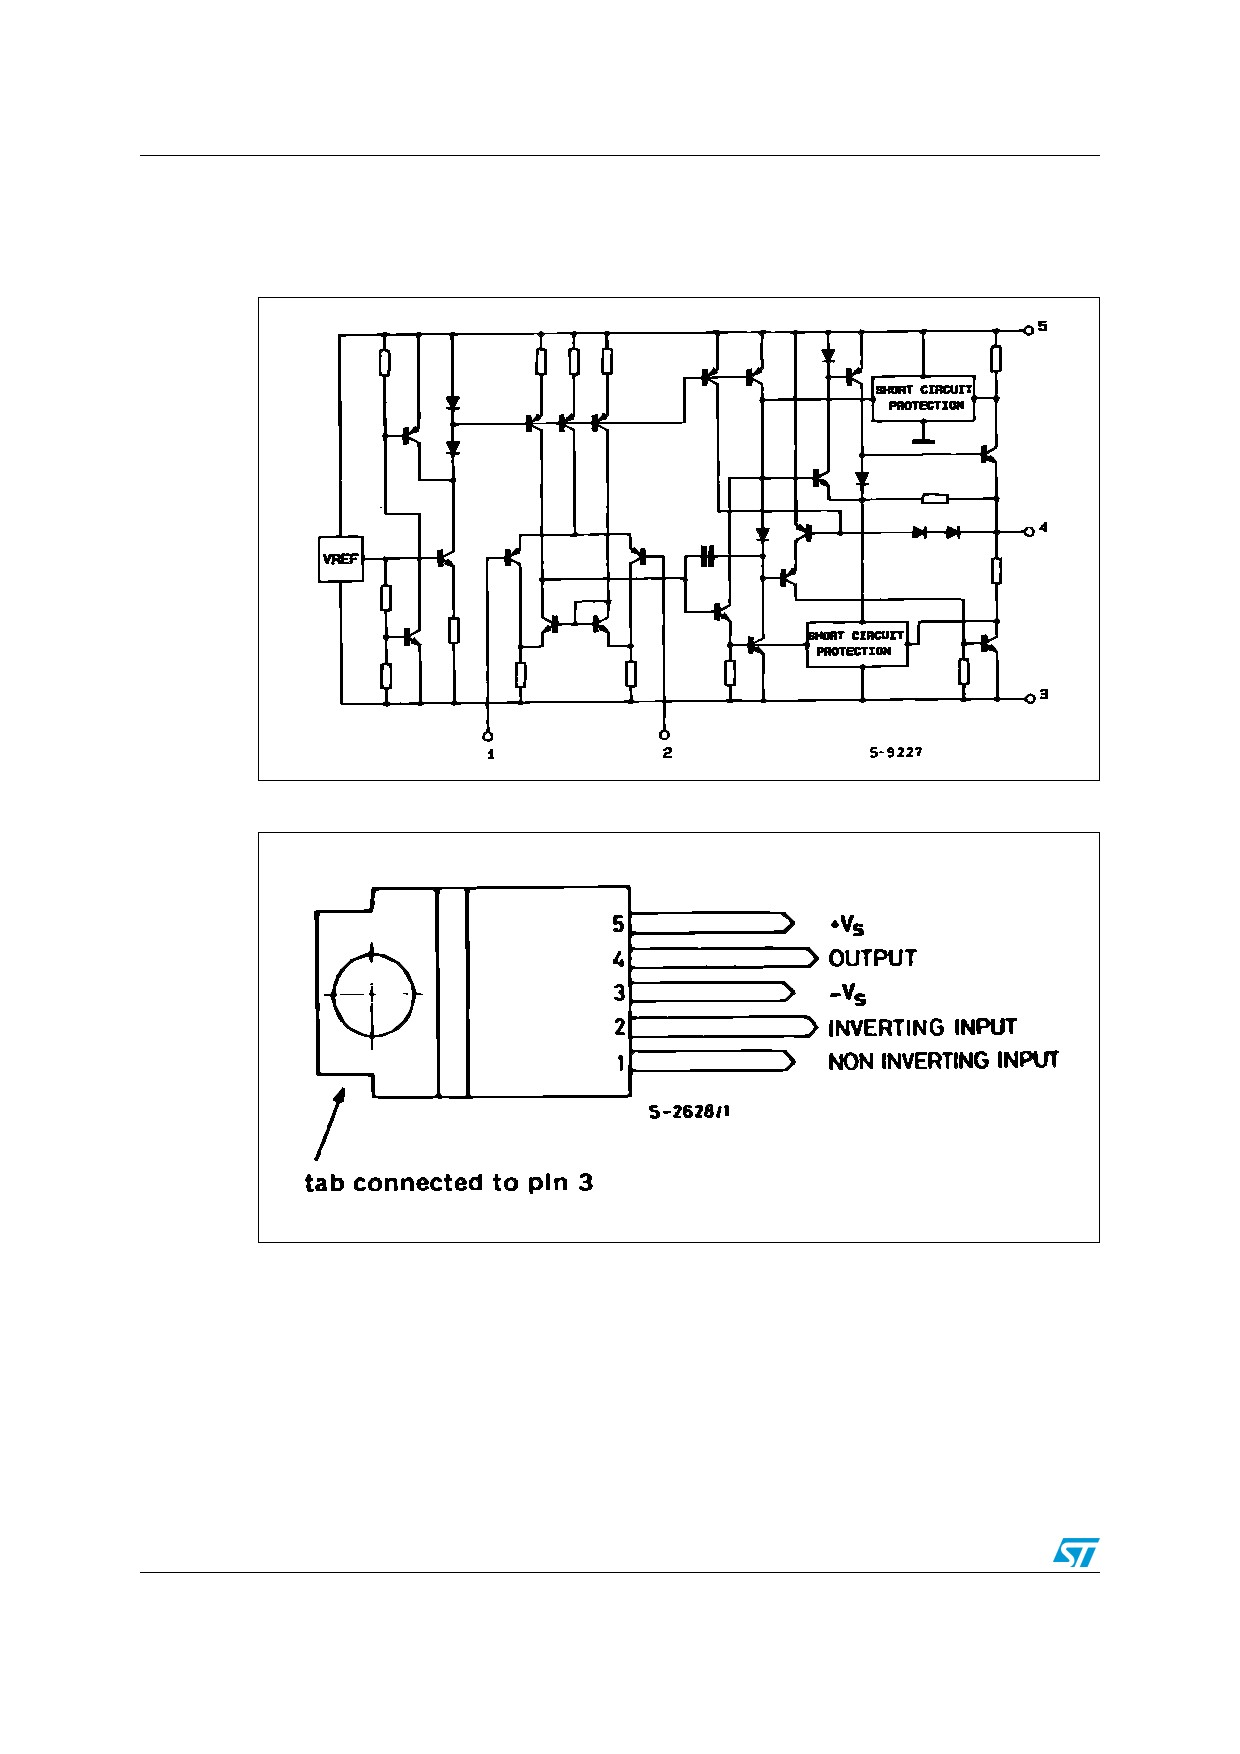 Search Keywords TDA2040 datasheet pdf ST Microelectronics 20W Hi Fi AUDIO POWER AMPLIFIER stock pinout distributor price schematic inventory